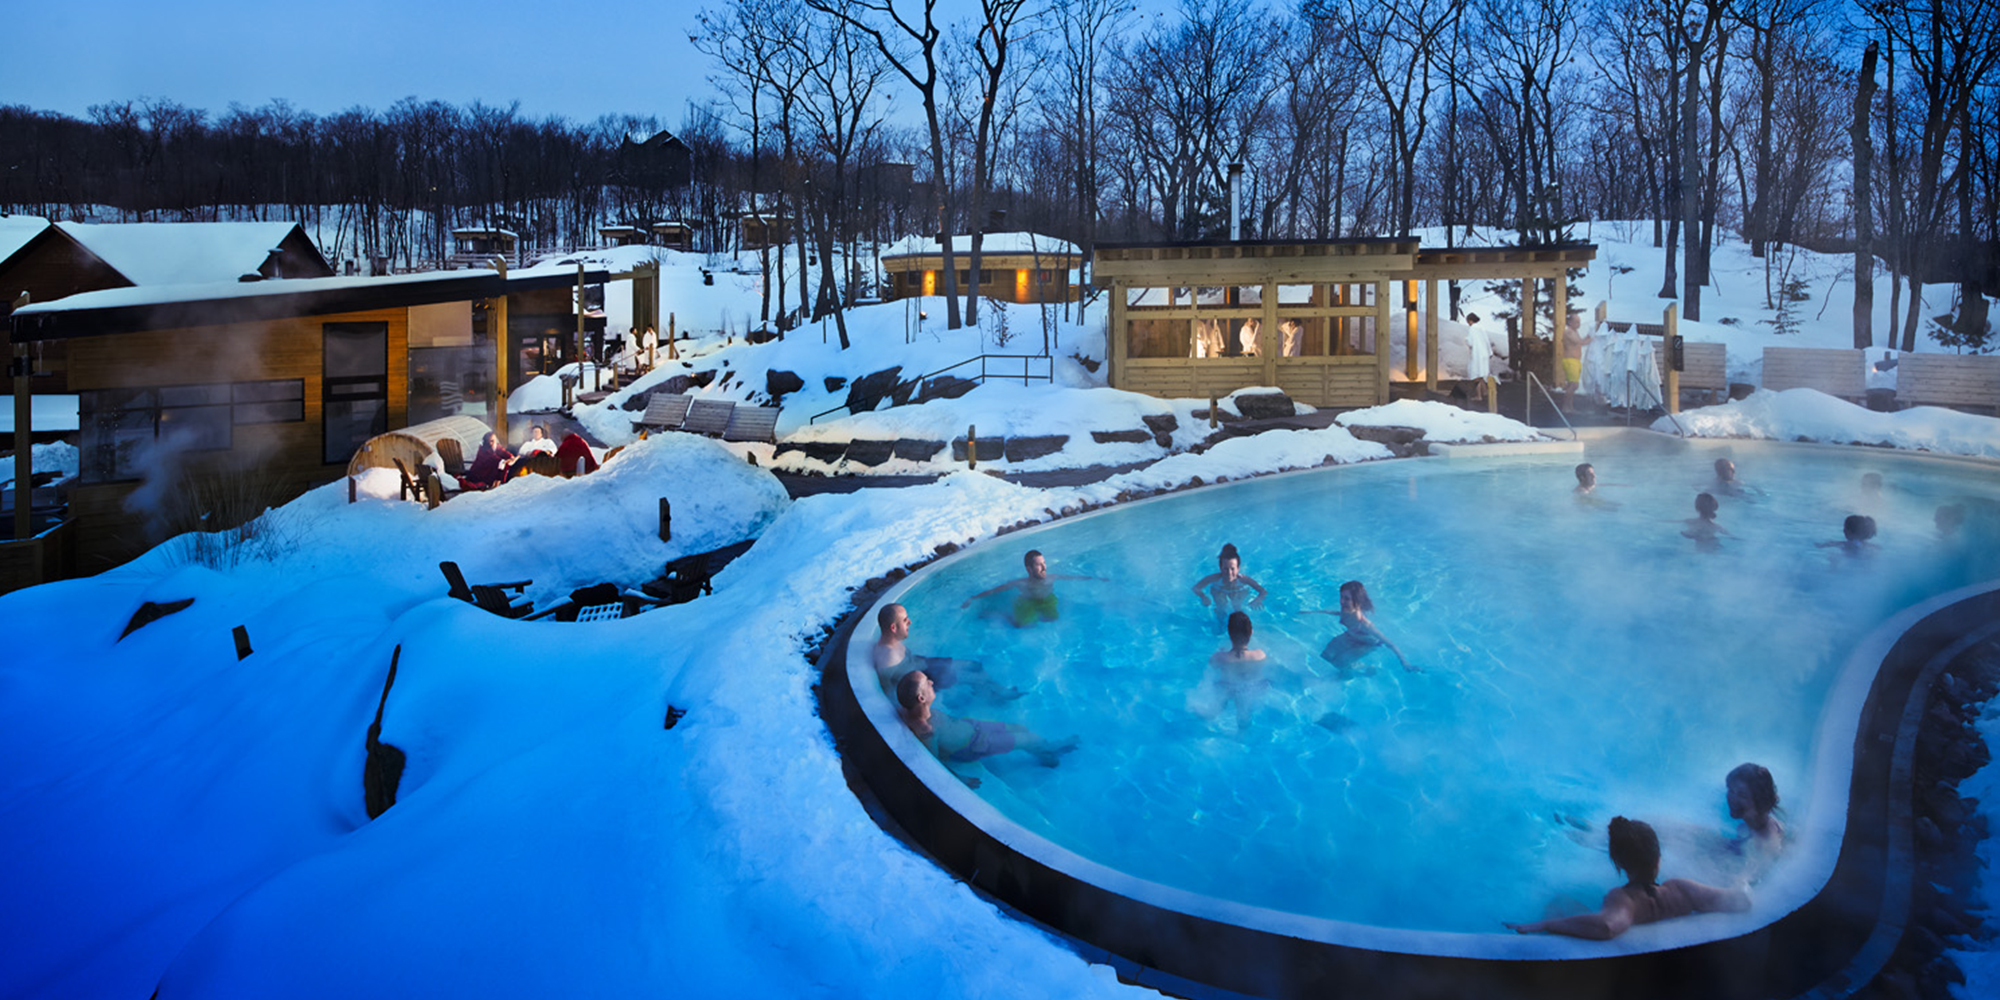 Nordik Spa And Inspiration Photos And Videos Online Albums Nordik Spa Nature Chelsea Qc